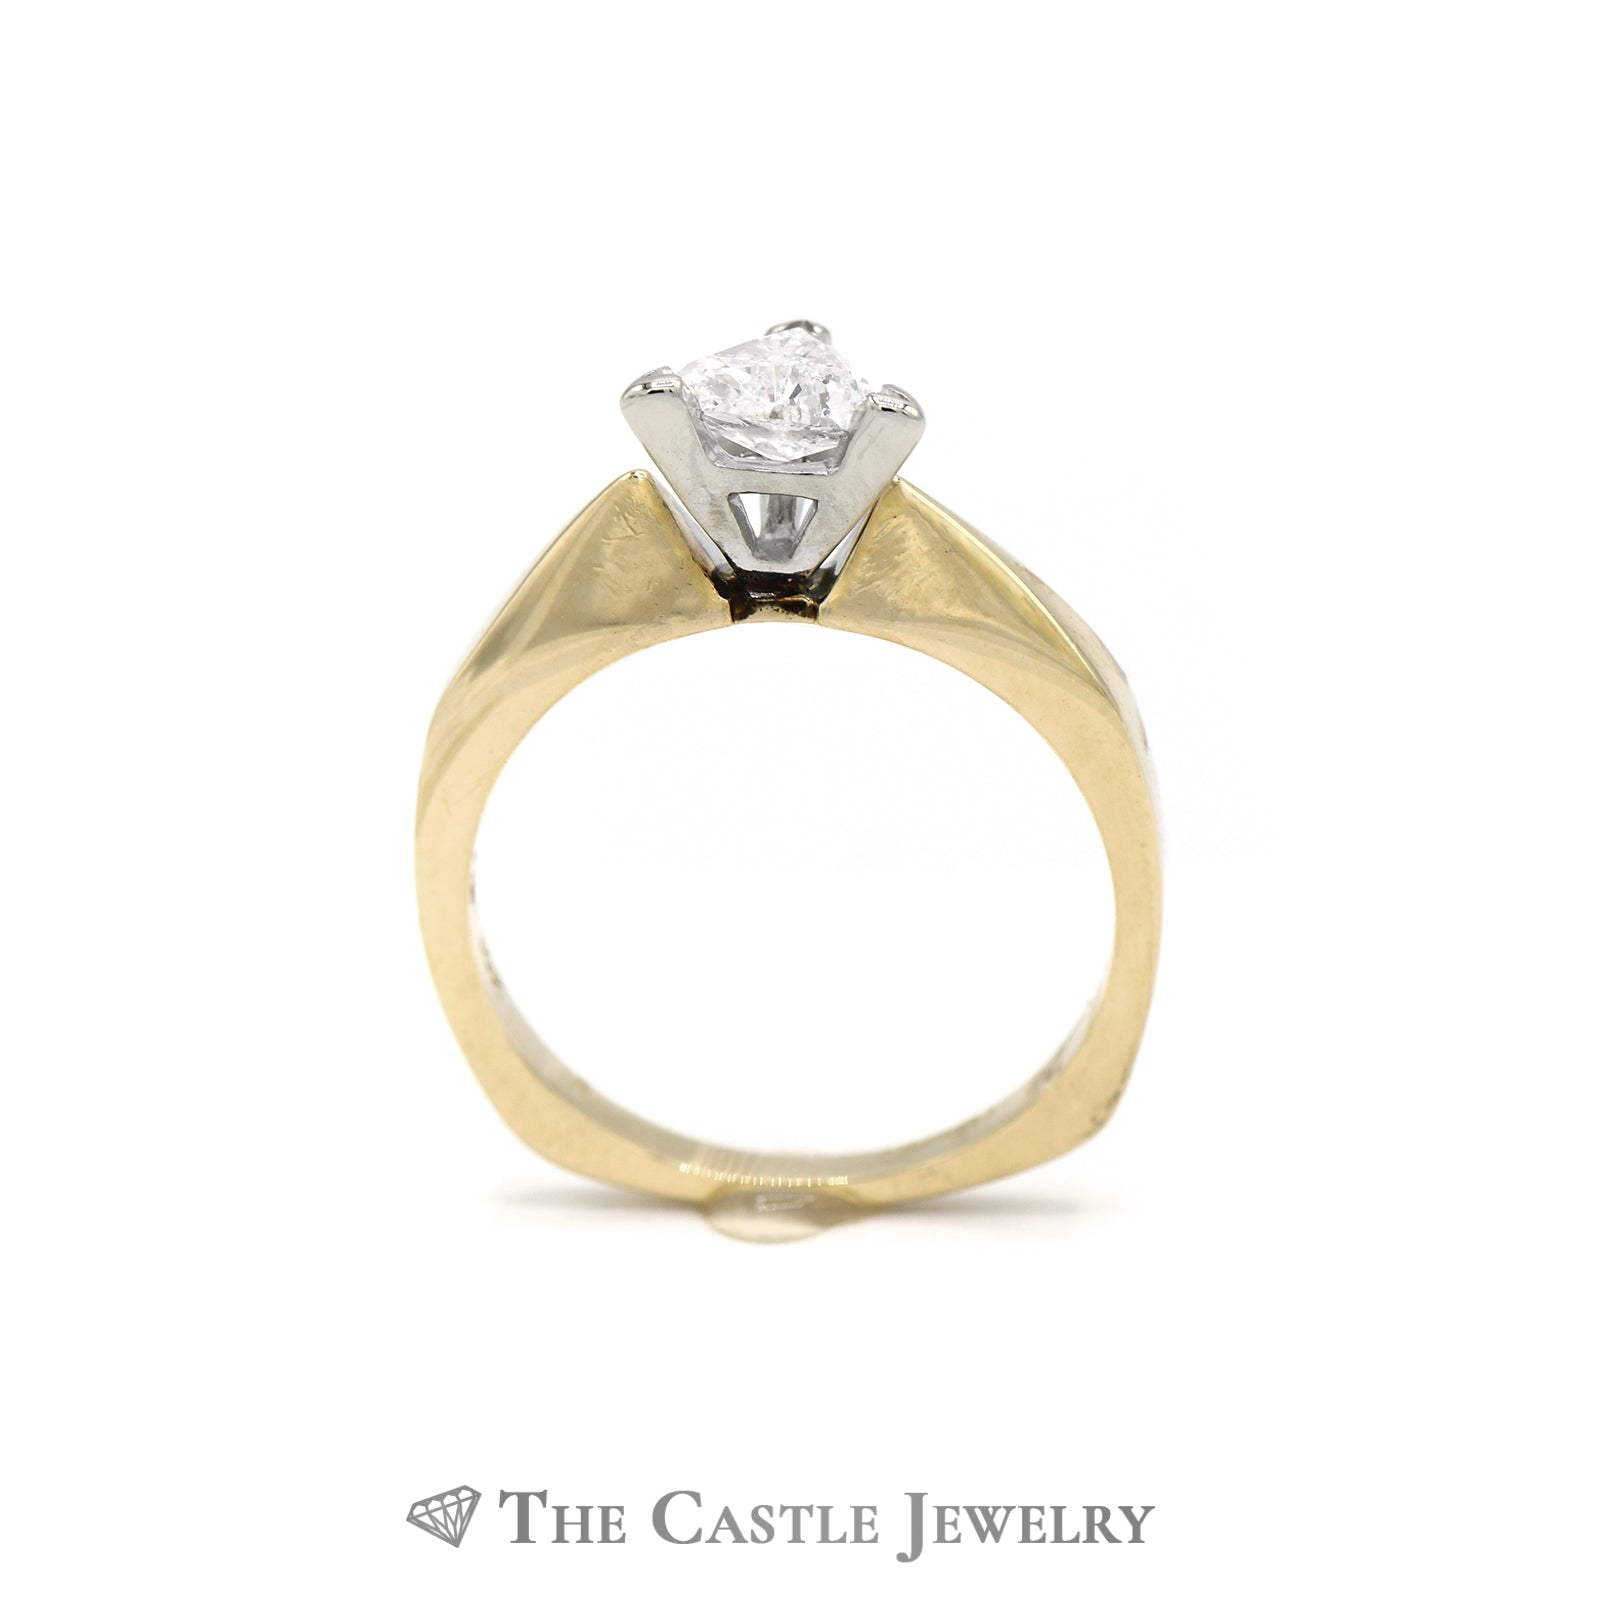 Trillion Cut Solitaire Diamond Engagement Ring in 14K Yellow Gold-1